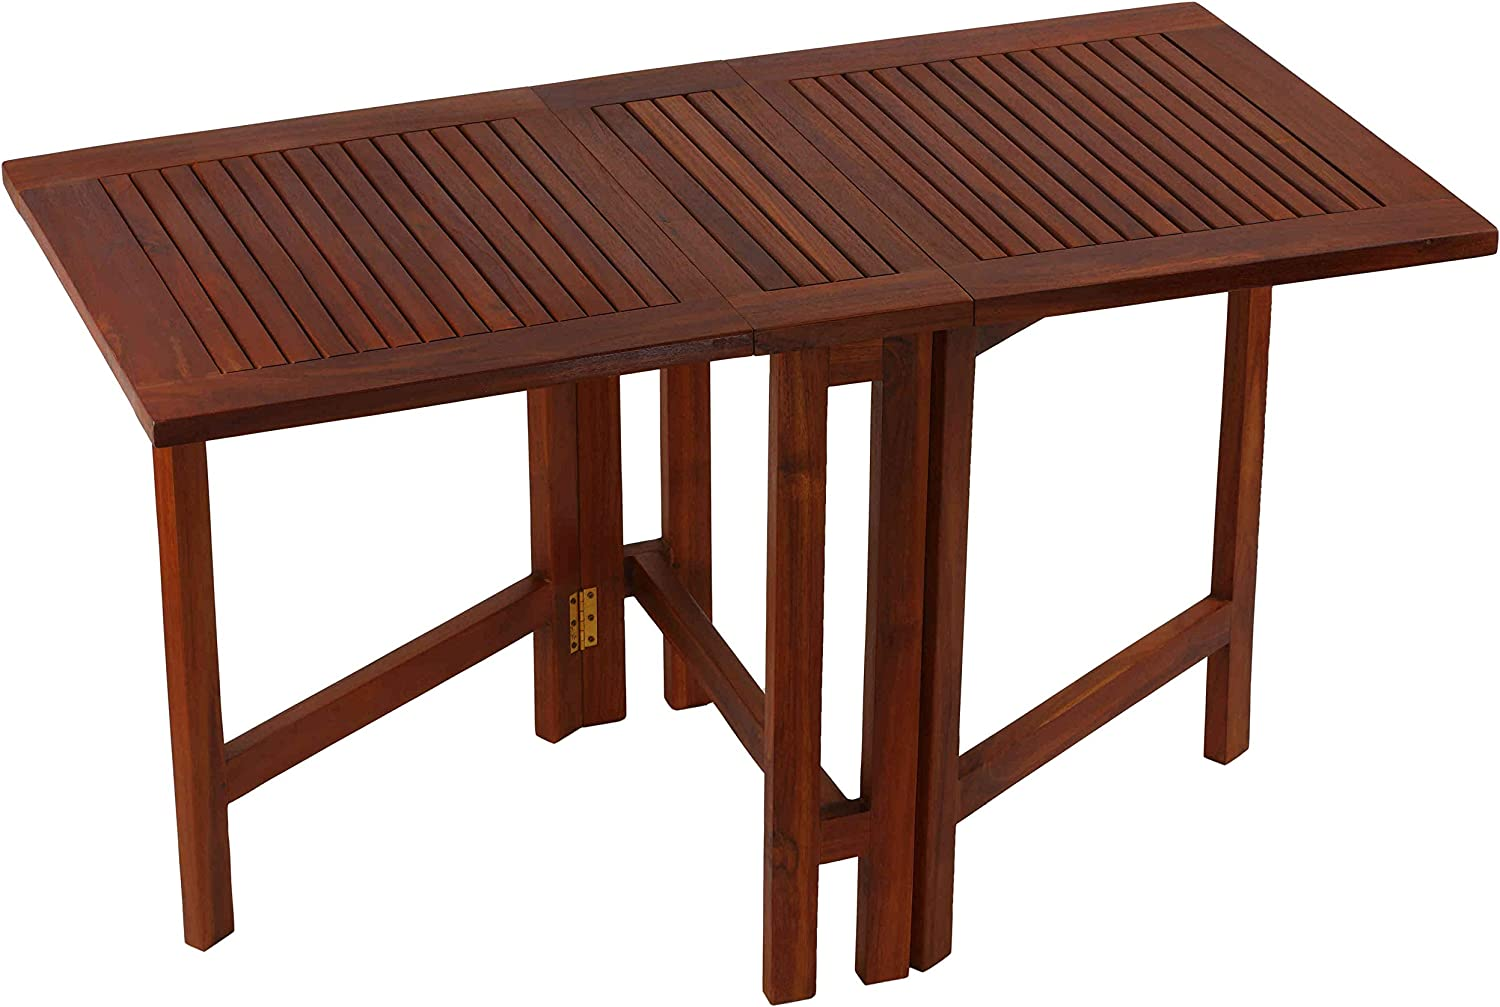 "Bare Decor Emery Double Leaf Butterfly Folding Dining Table, 51.25"" Wide, Brown"